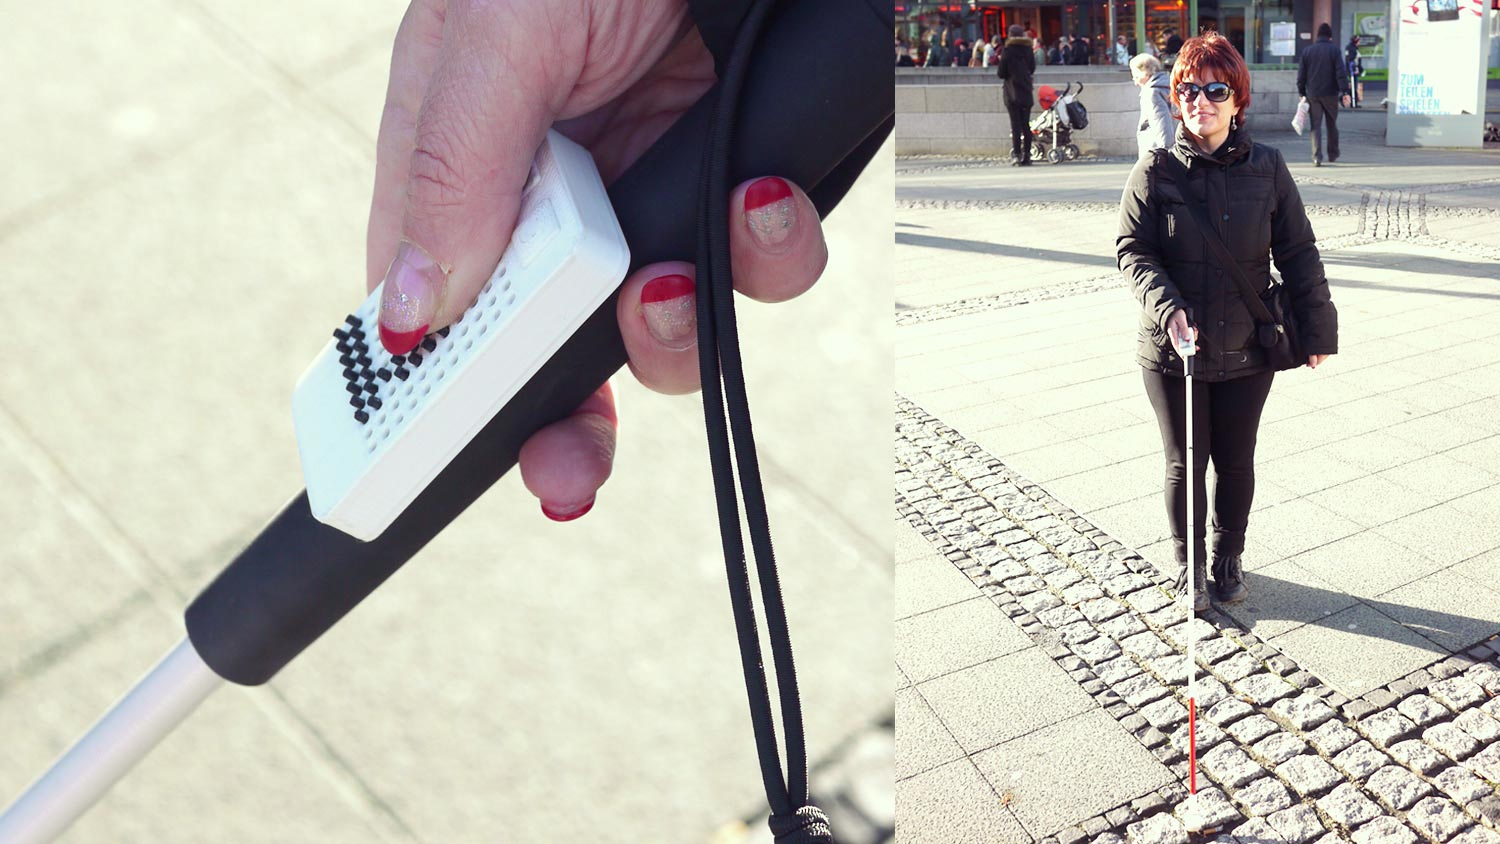 Silja Korn testing the prototype on the street with holding a blindman's stick and the interface